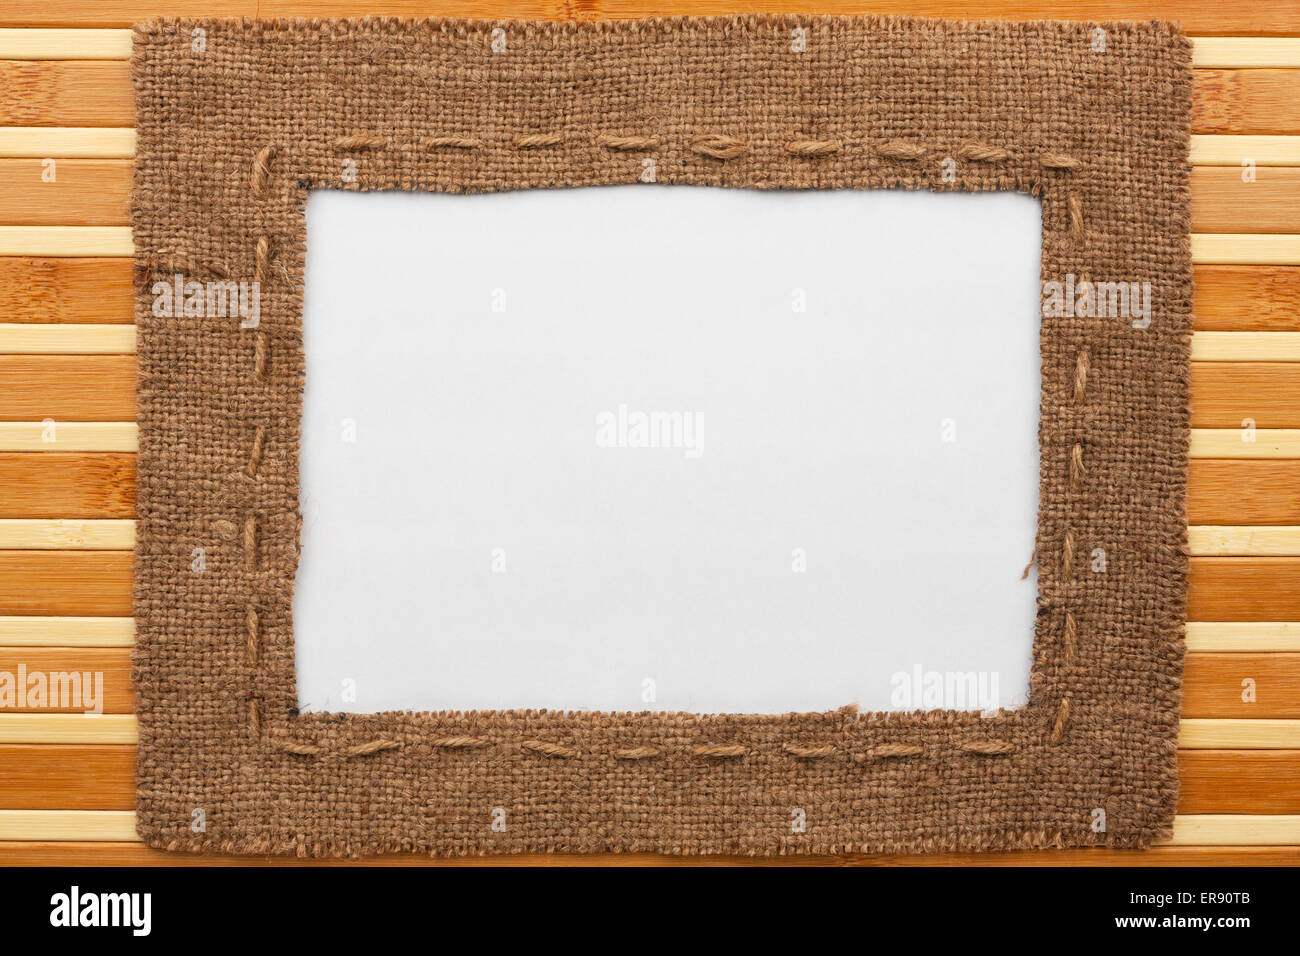 Frame made of burlap with white background lying on a bamboo mat ...